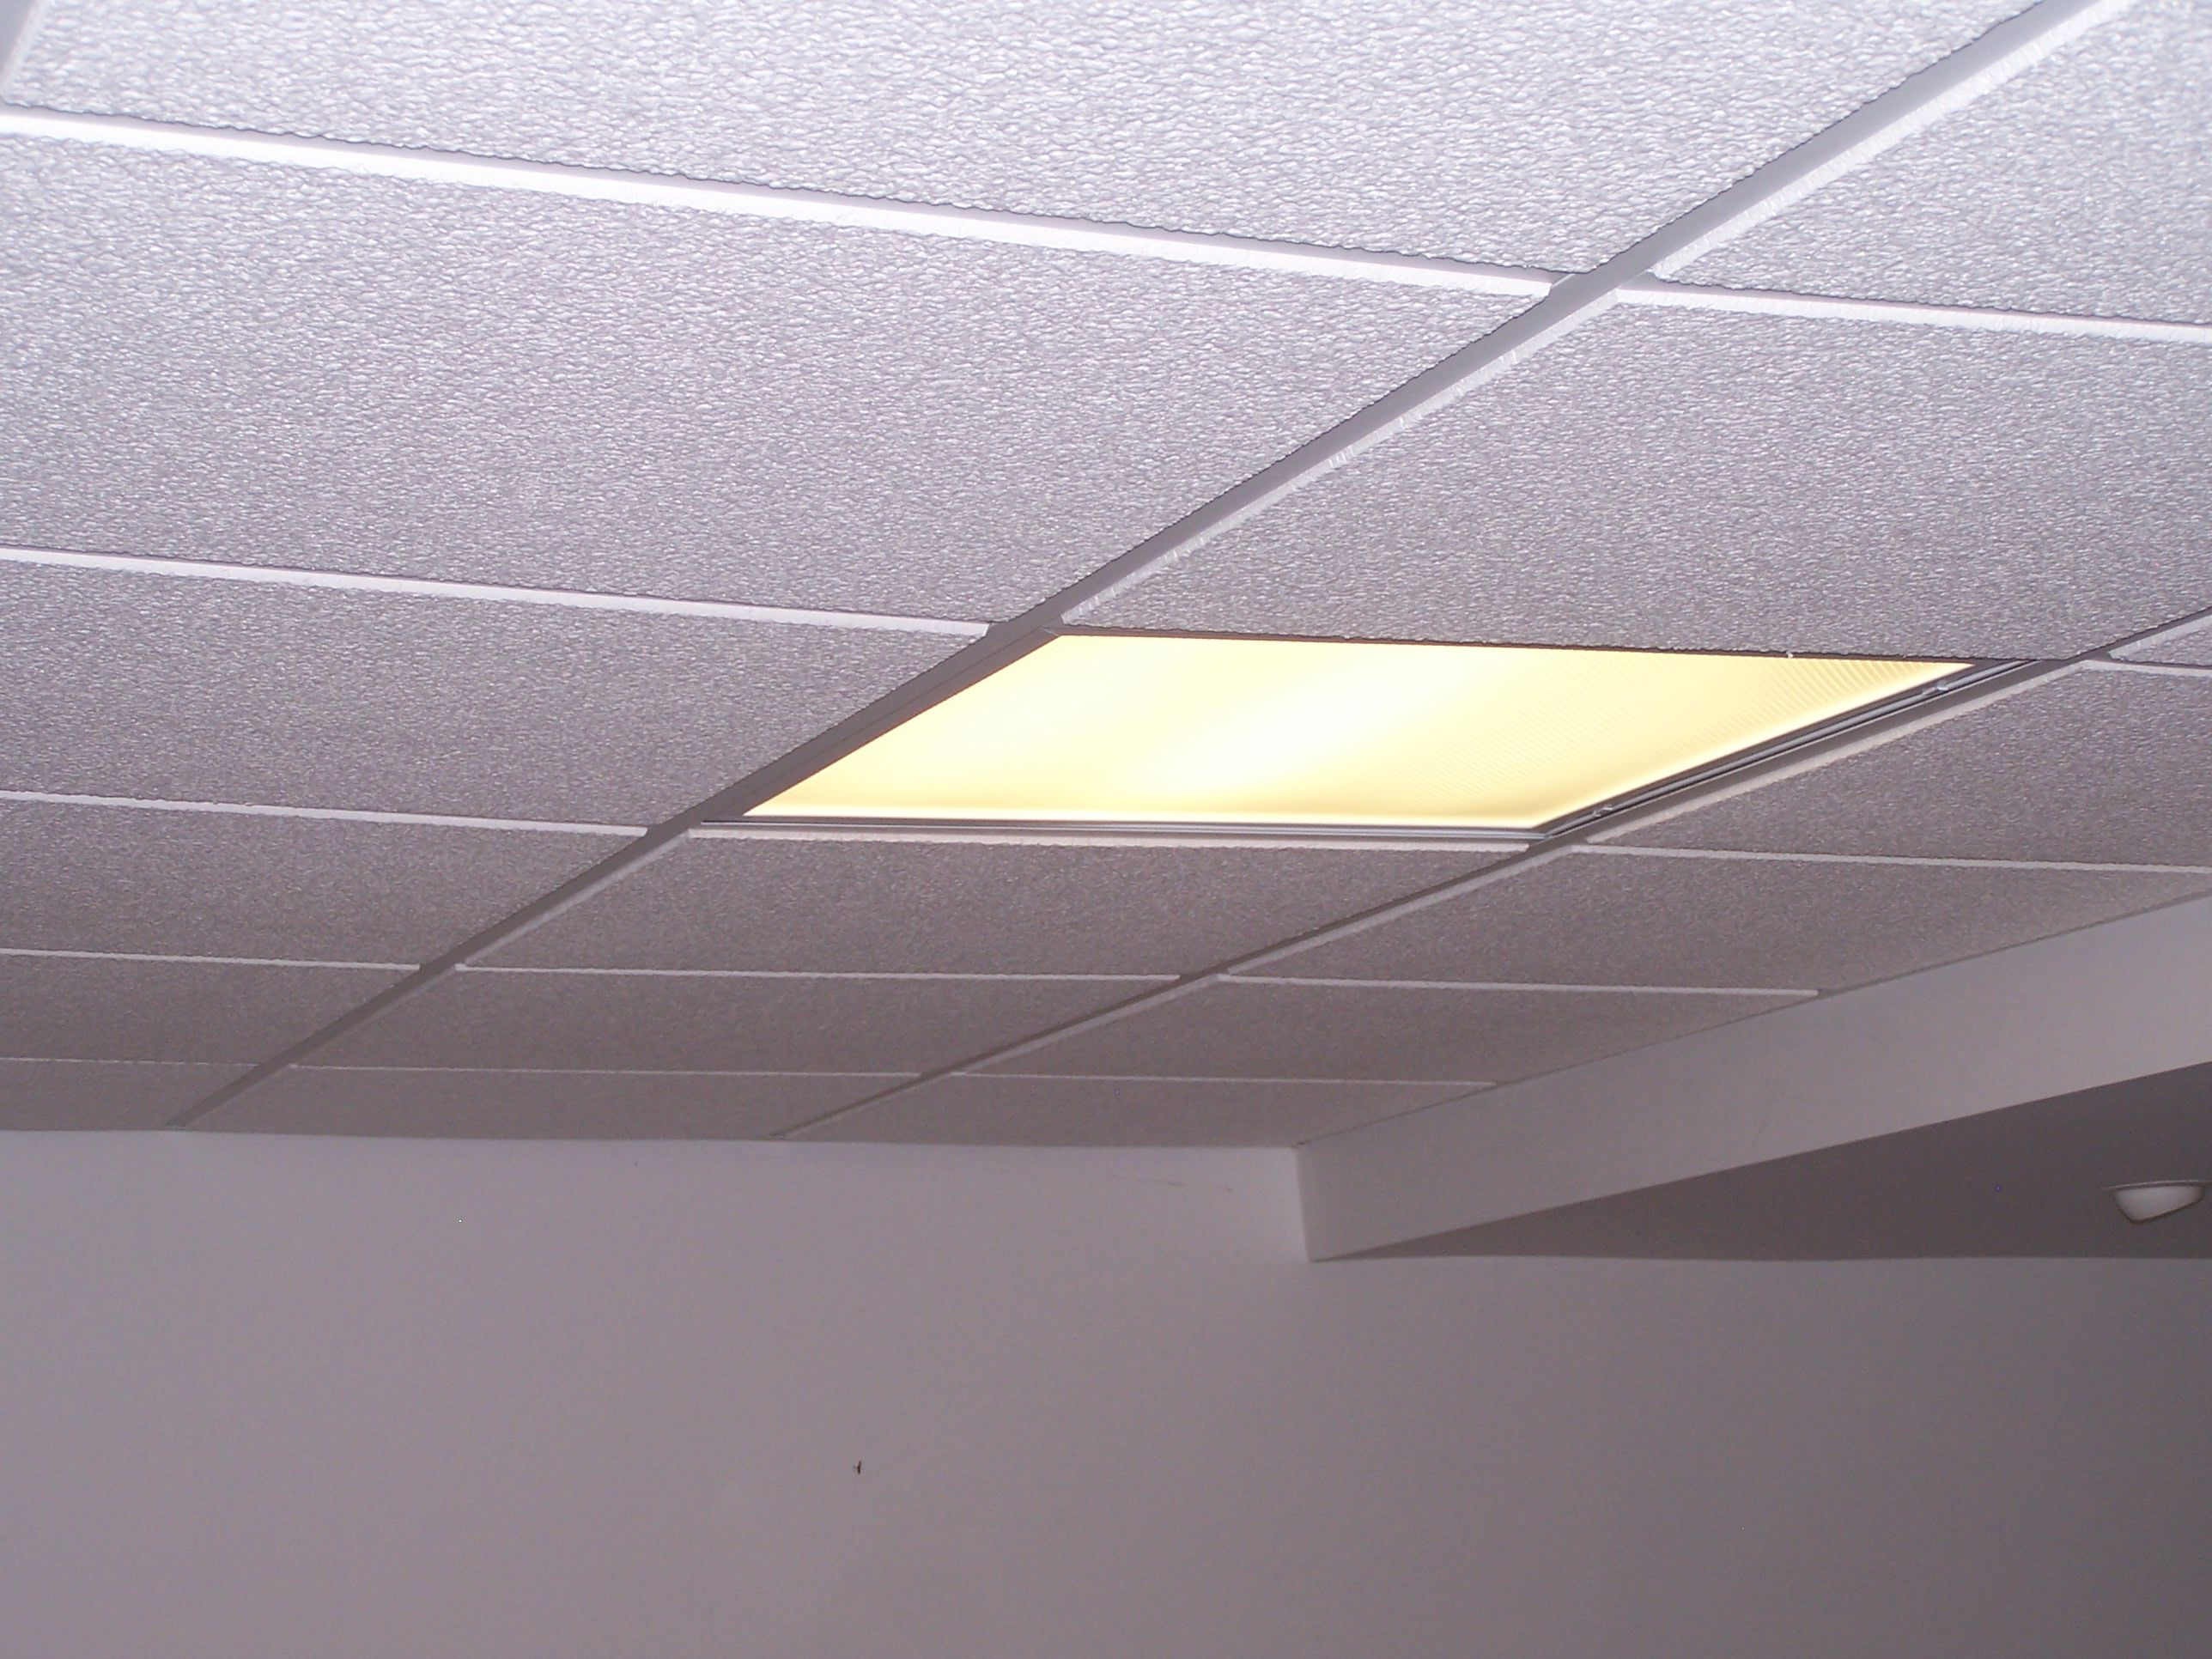 Drop ceiling fluorescent light fixtures 22 http drop ceiling fluorescent light fixtures 22 arubaitofo Image collections